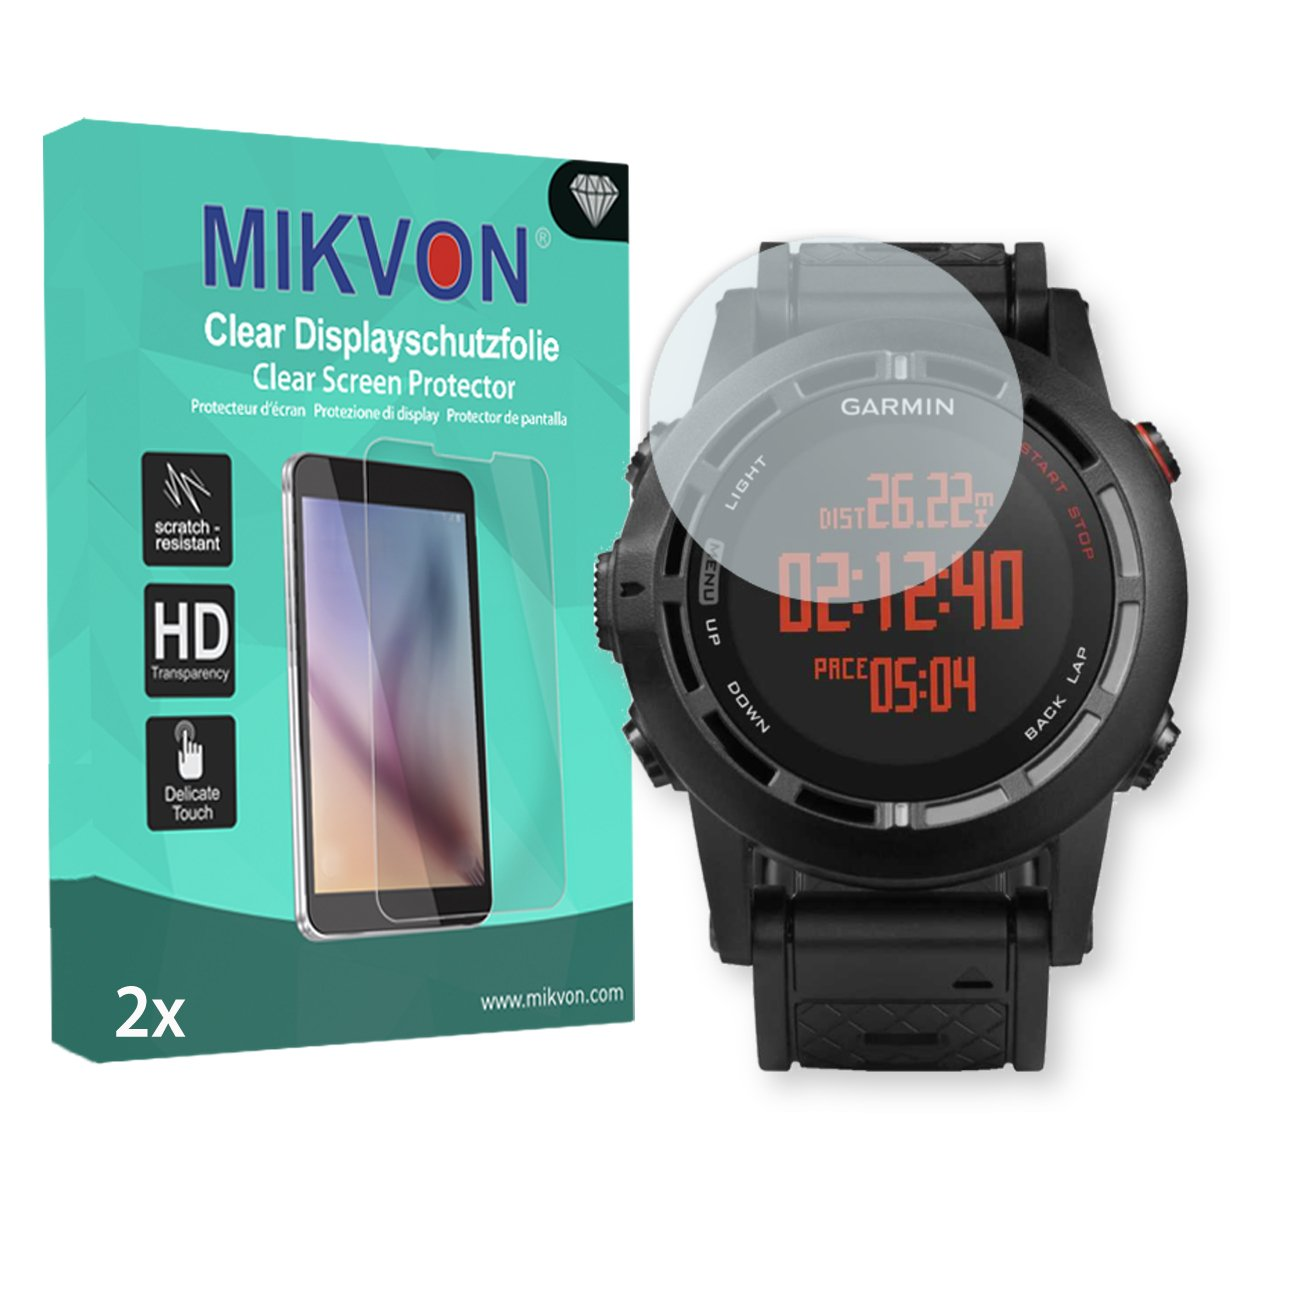 MIKVON 2X Clear Screen Protector for Garmin Fenix 2 - Retail Package with Accessories